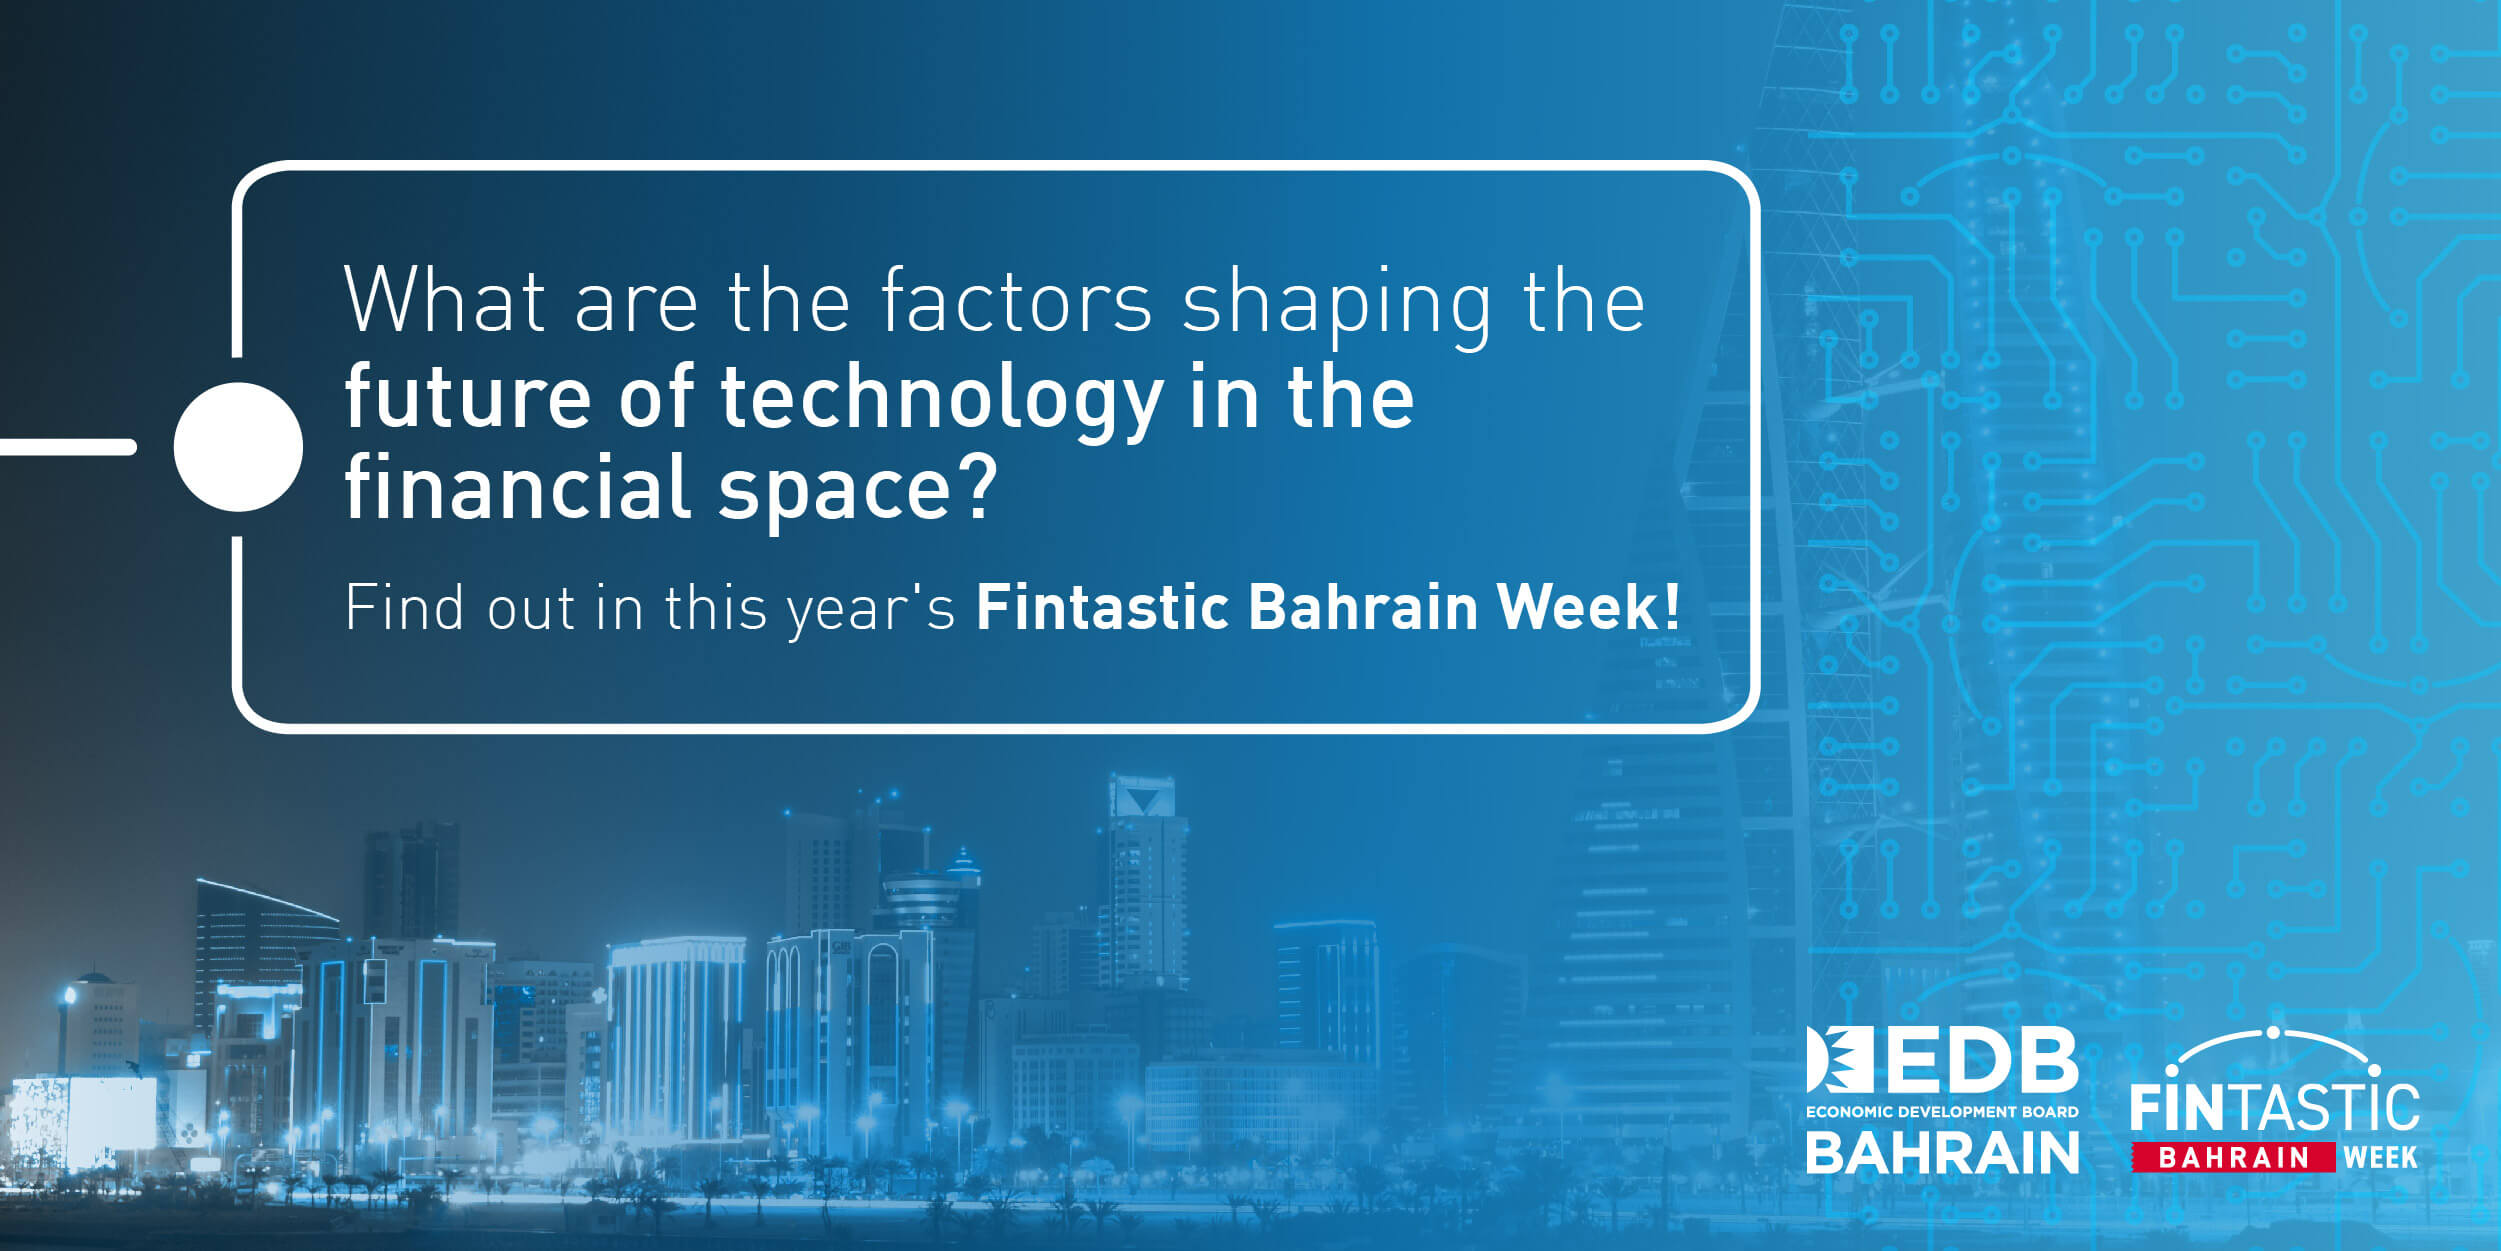 Middle East's FinTech revolution to be showcased in Bahrain